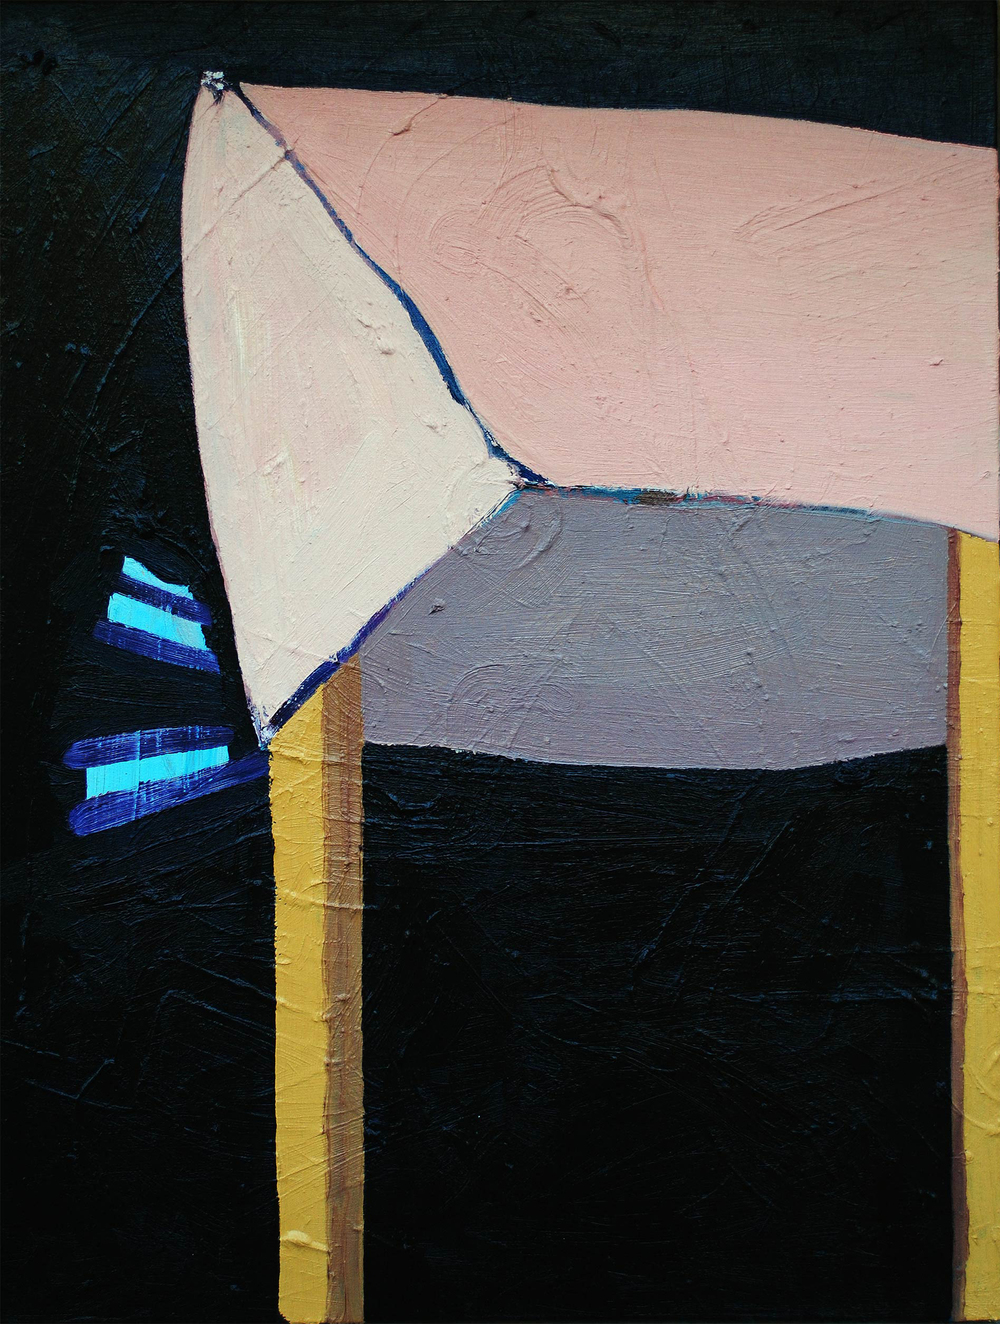 Untitled, oil on canvas, 70 x 53 cm, 2013